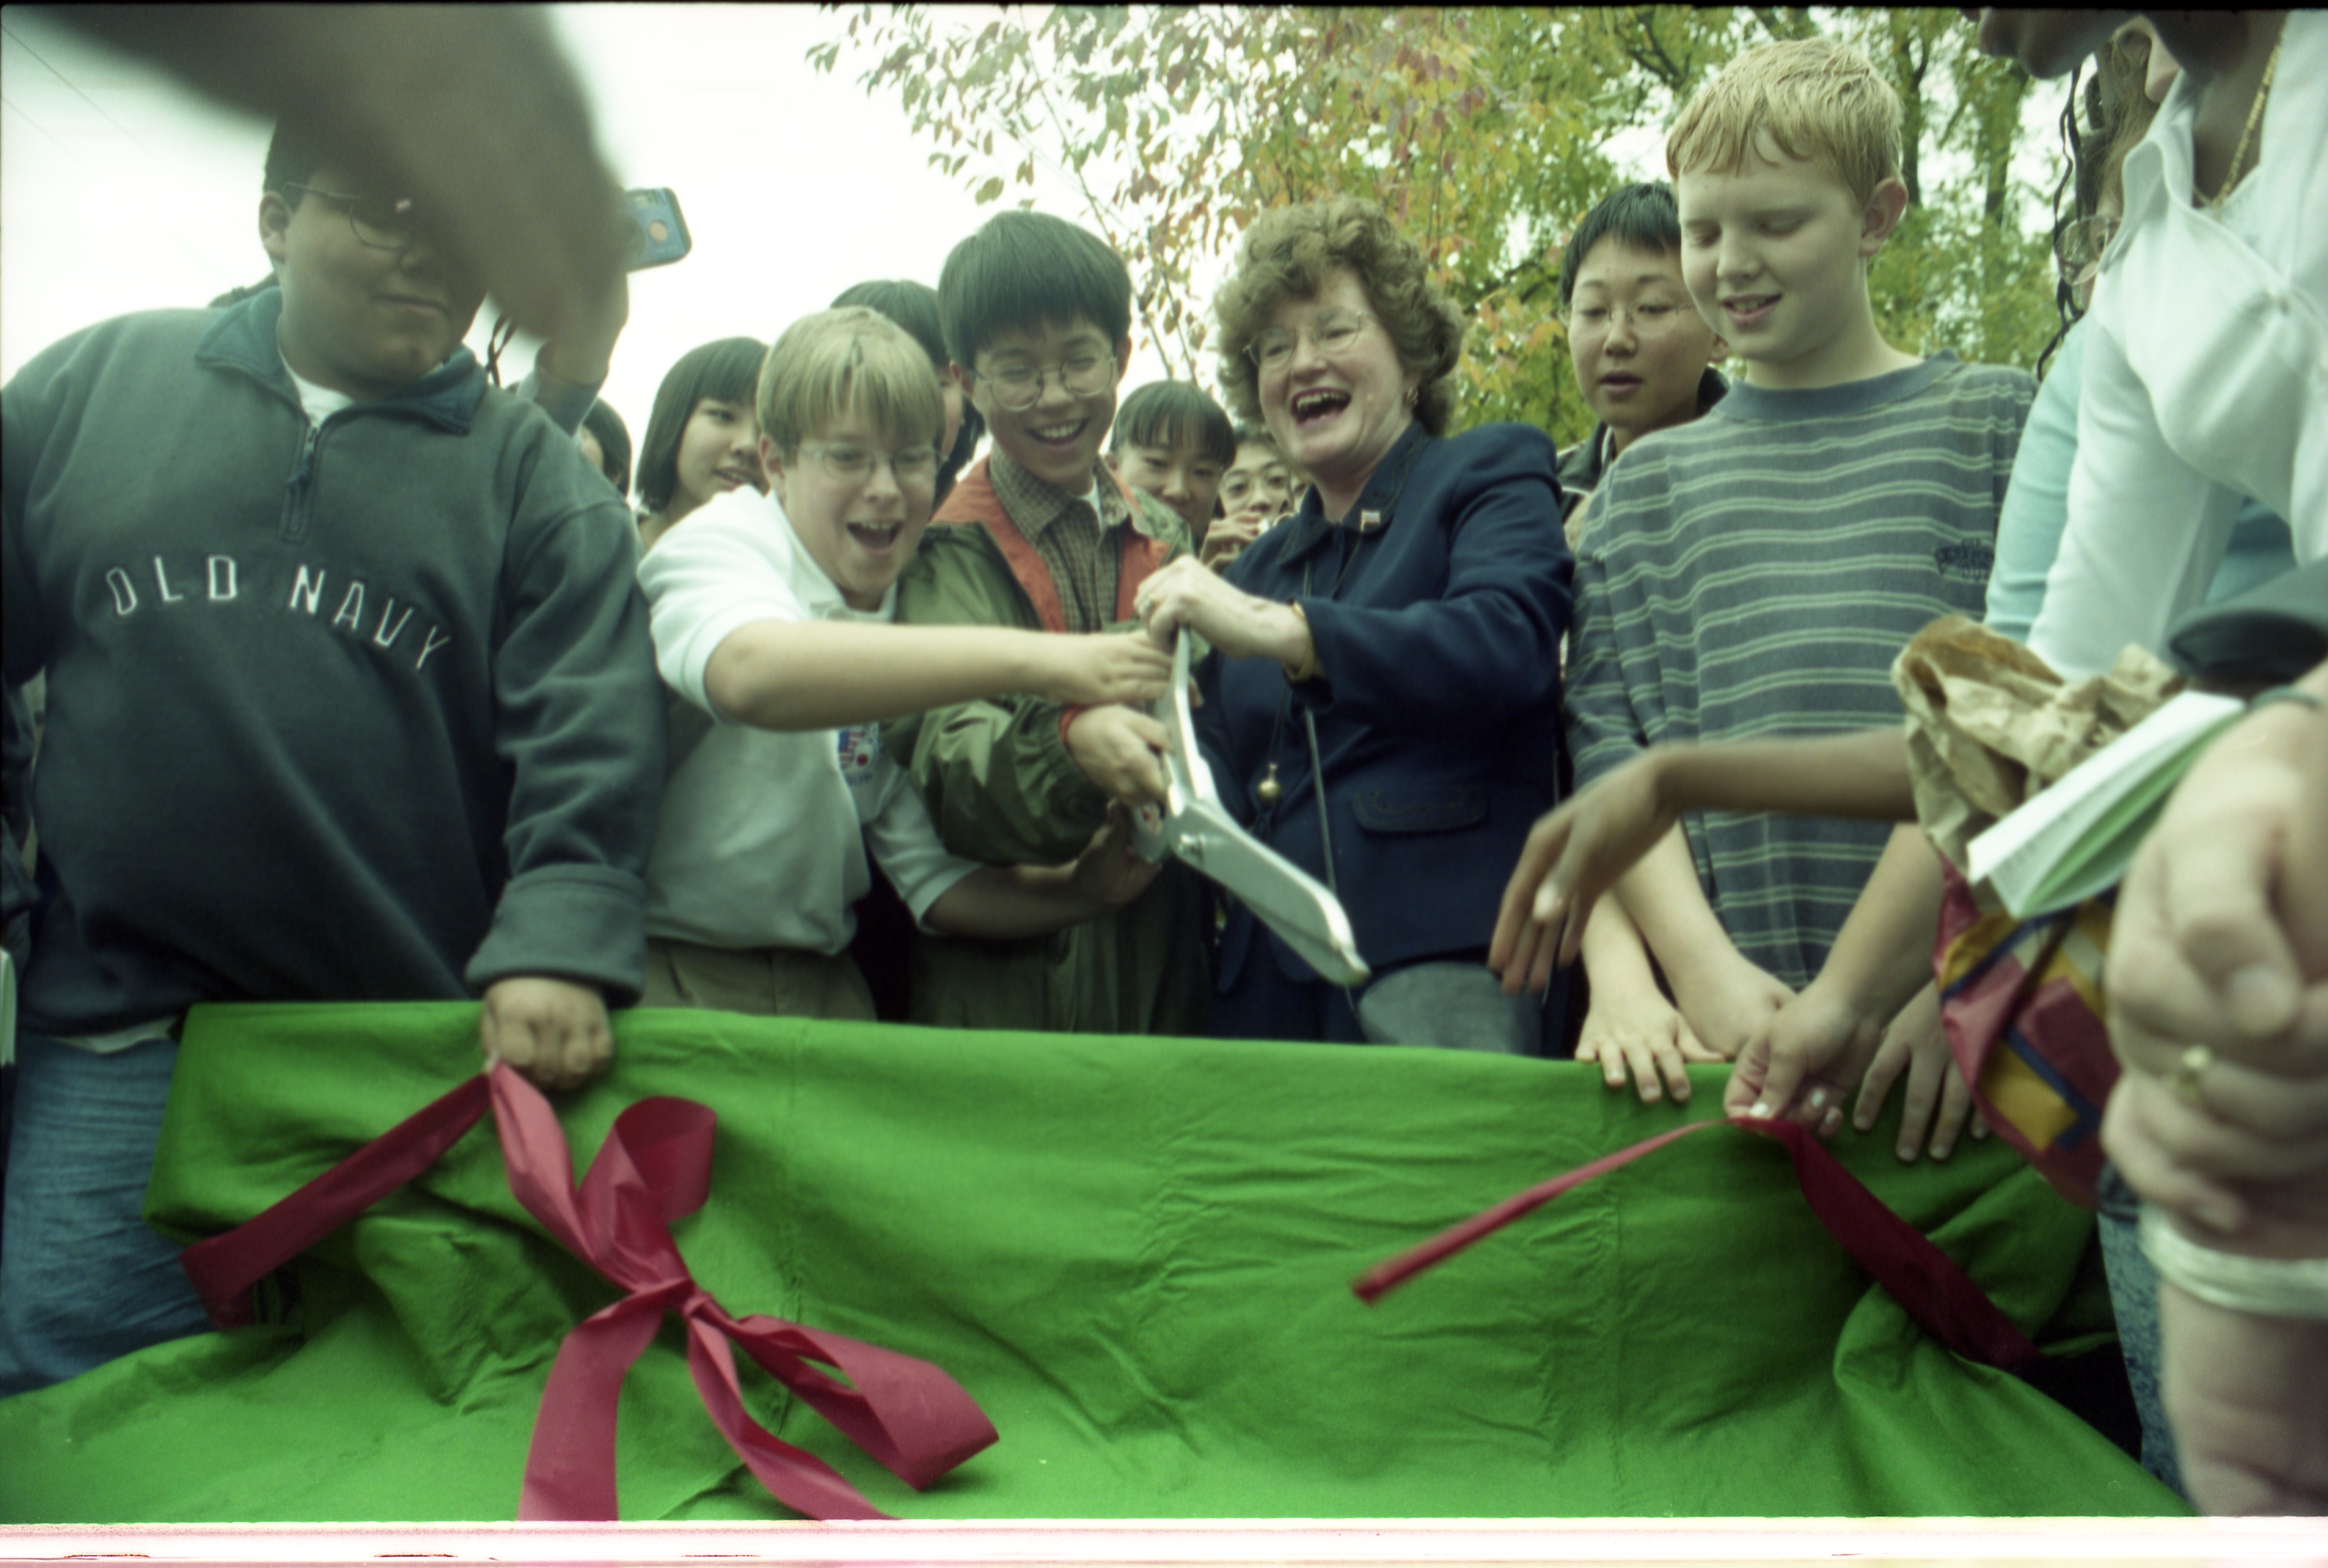 Mayor Ingrid Sheldon With Assistance From Students Cuts Ribbon For Bench Commemorating 30th Anniversary Hikone-Ann Arbor Sister Cities, October 11, 1999 image